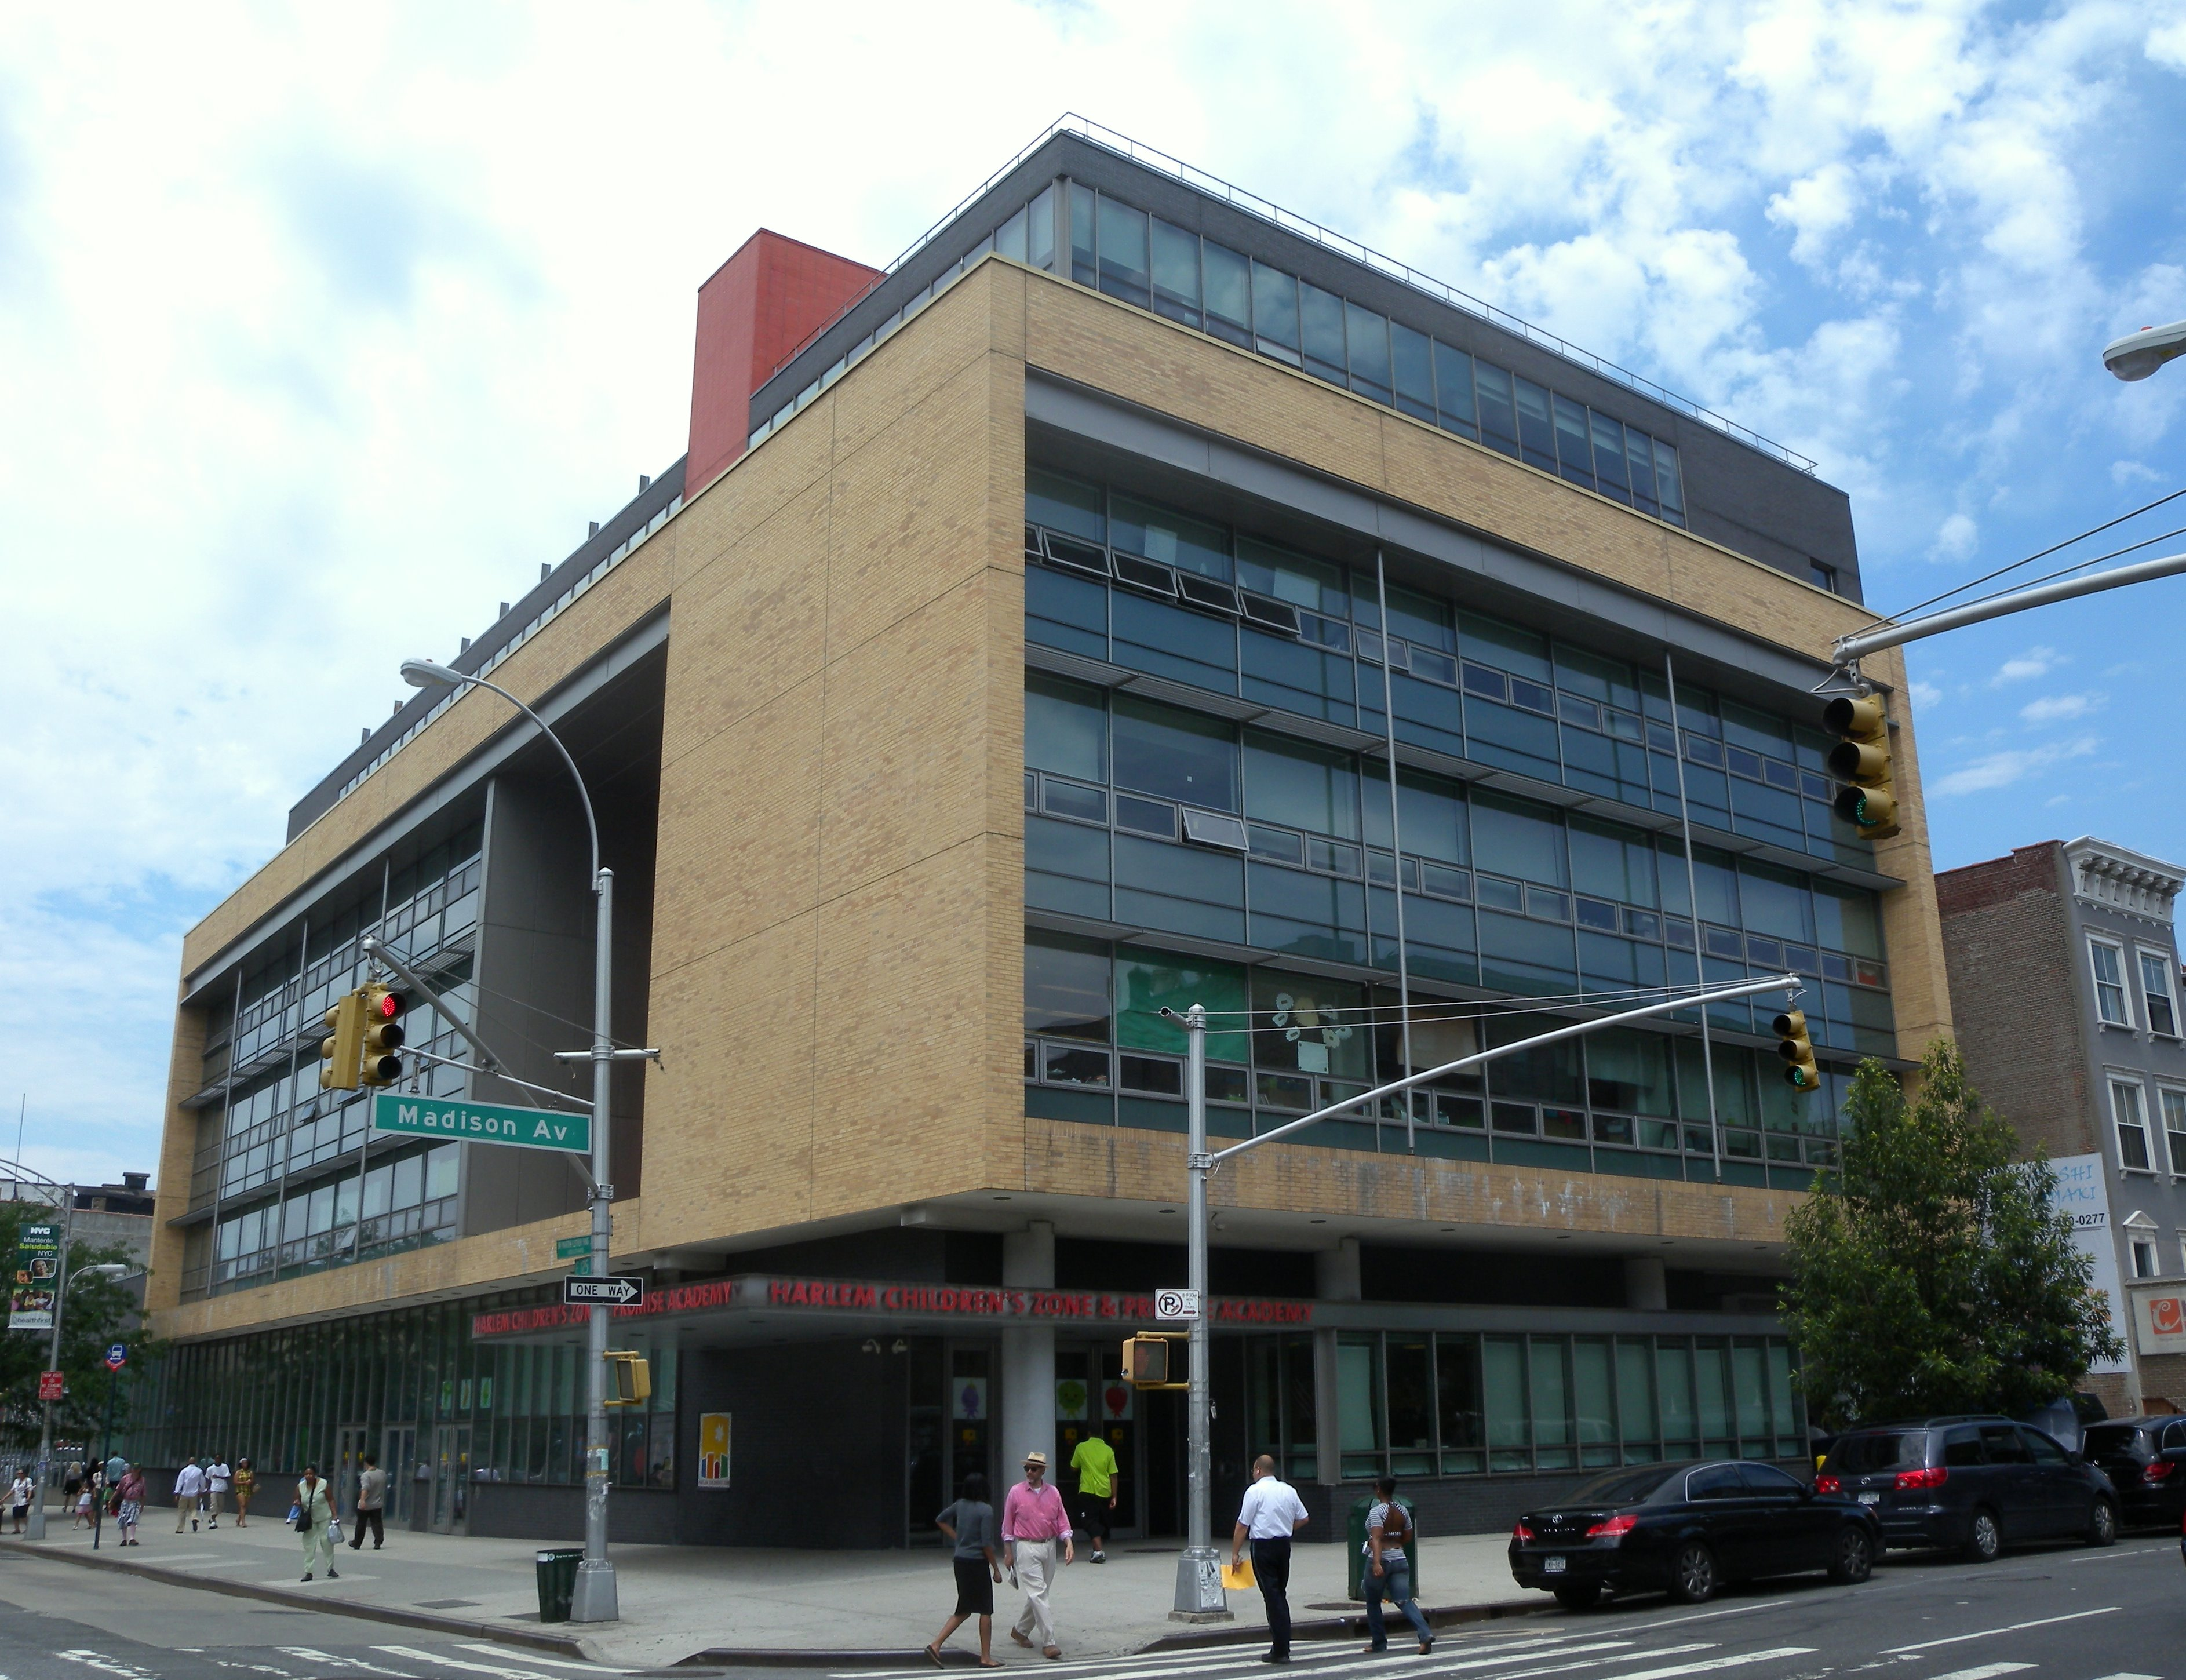 Harlem Children's Zone and Promise Academy.  Image by Jim.henderson